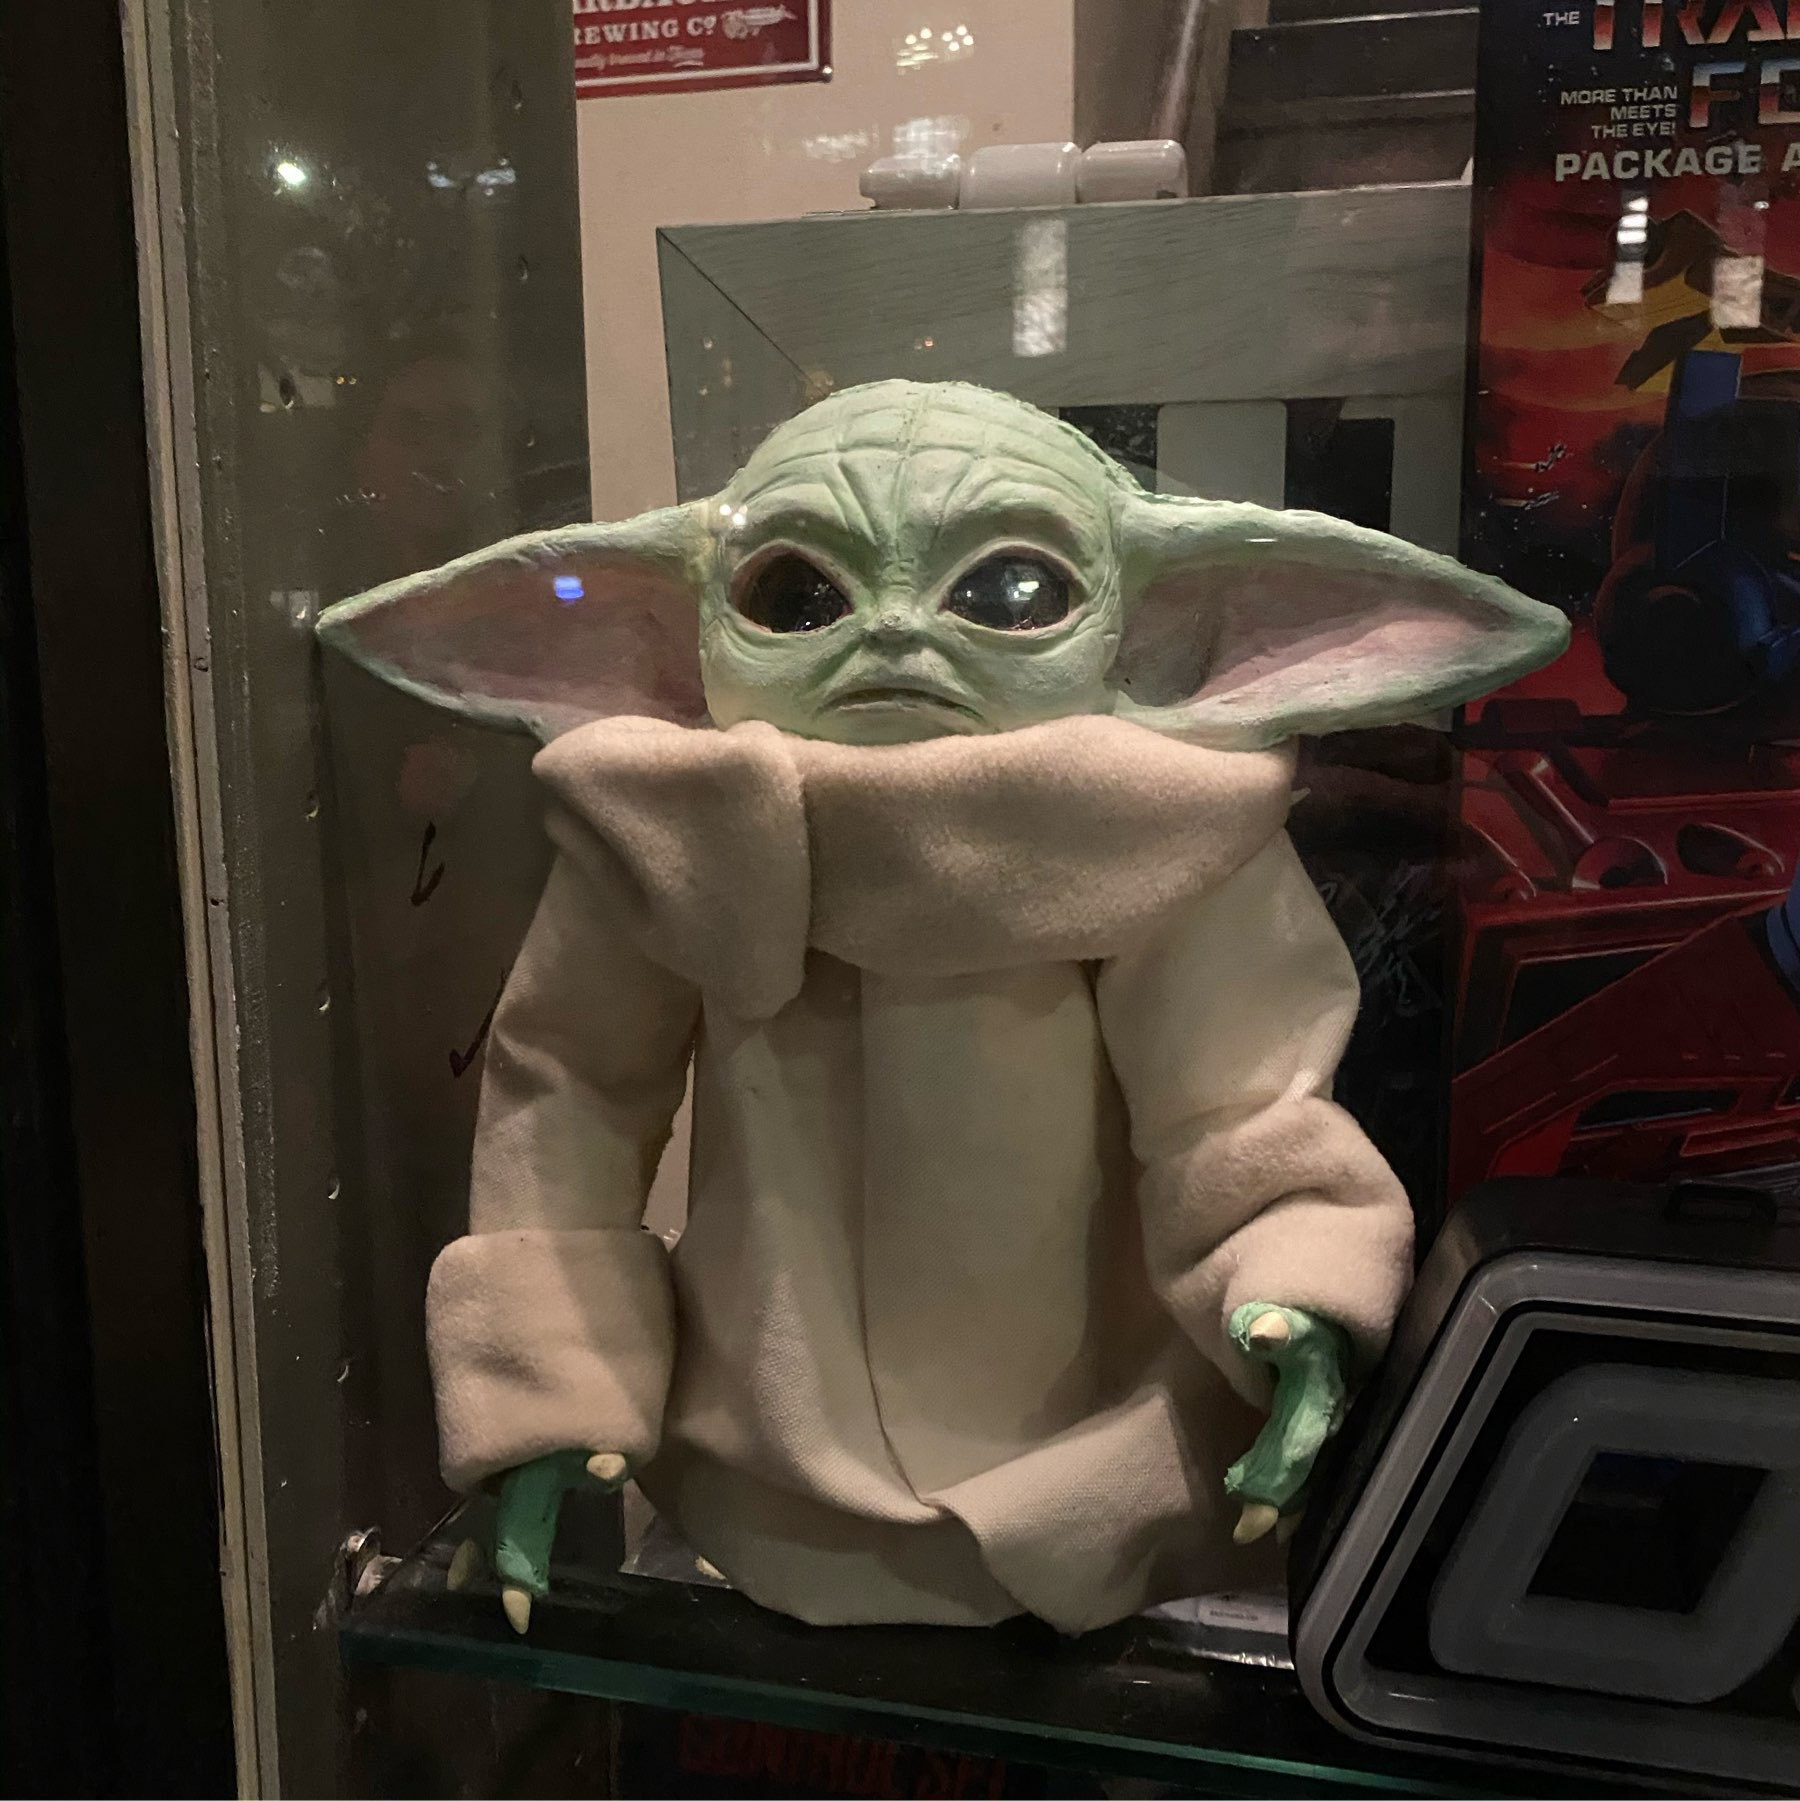 A Yoda doll in a window display.